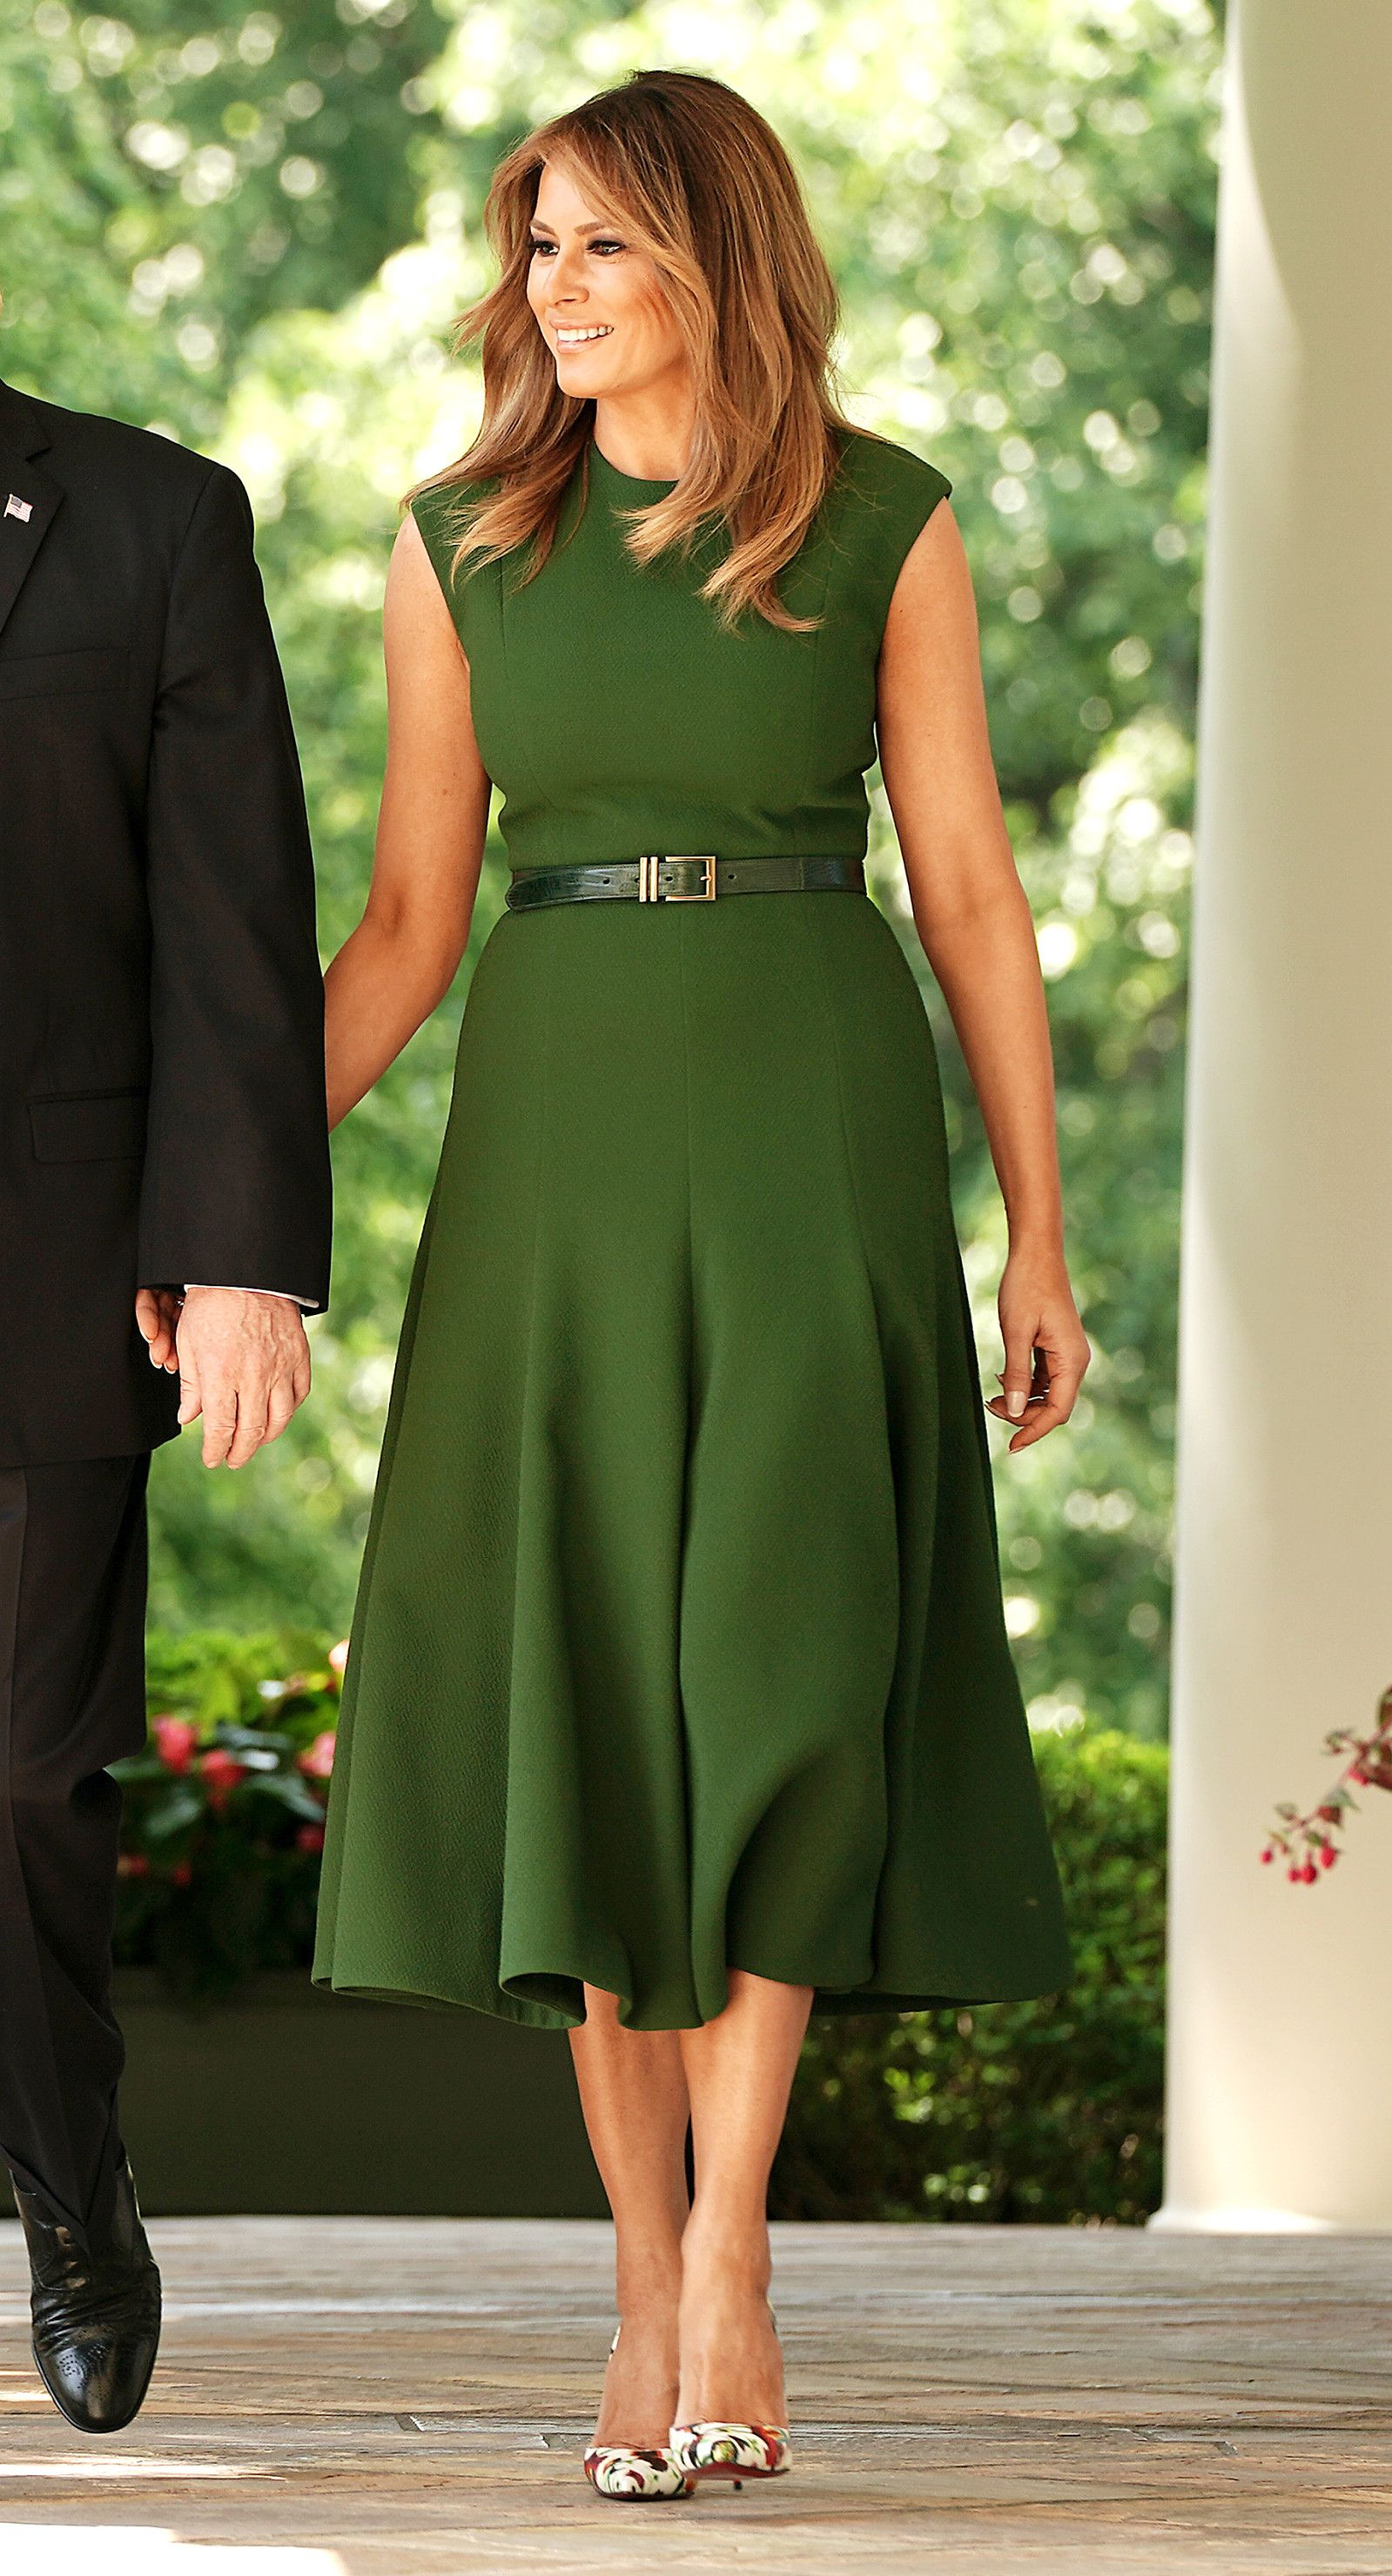 Melania Trump Rings In The New Year Wearing A 4 740 Givenchy Dress Givenchy Dress Classic Dress Trump Fashion